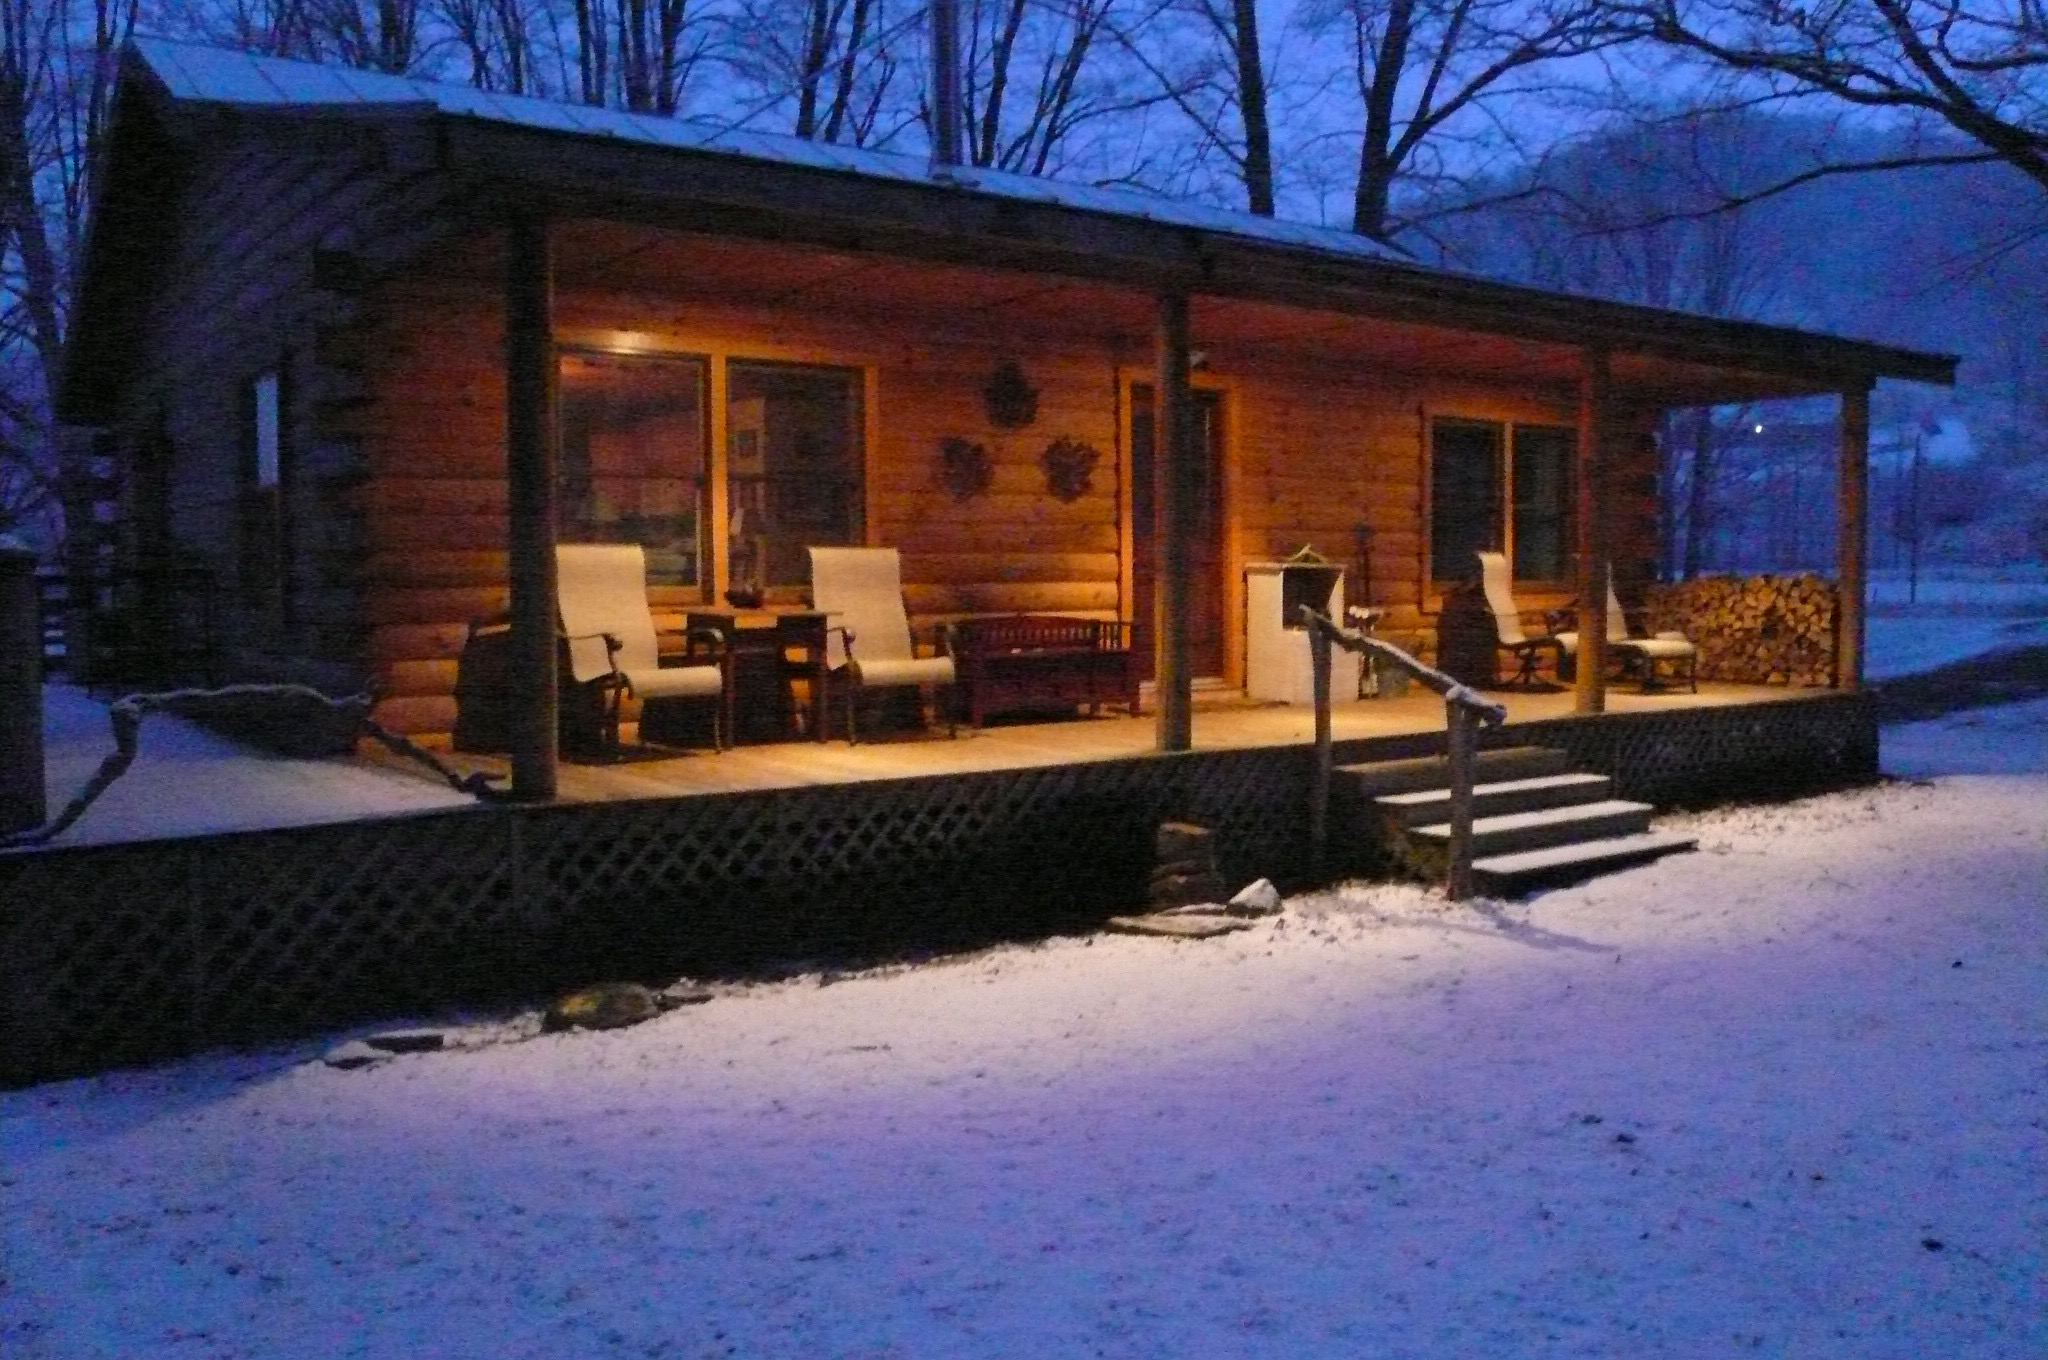 cabin_snowy_night.jpg